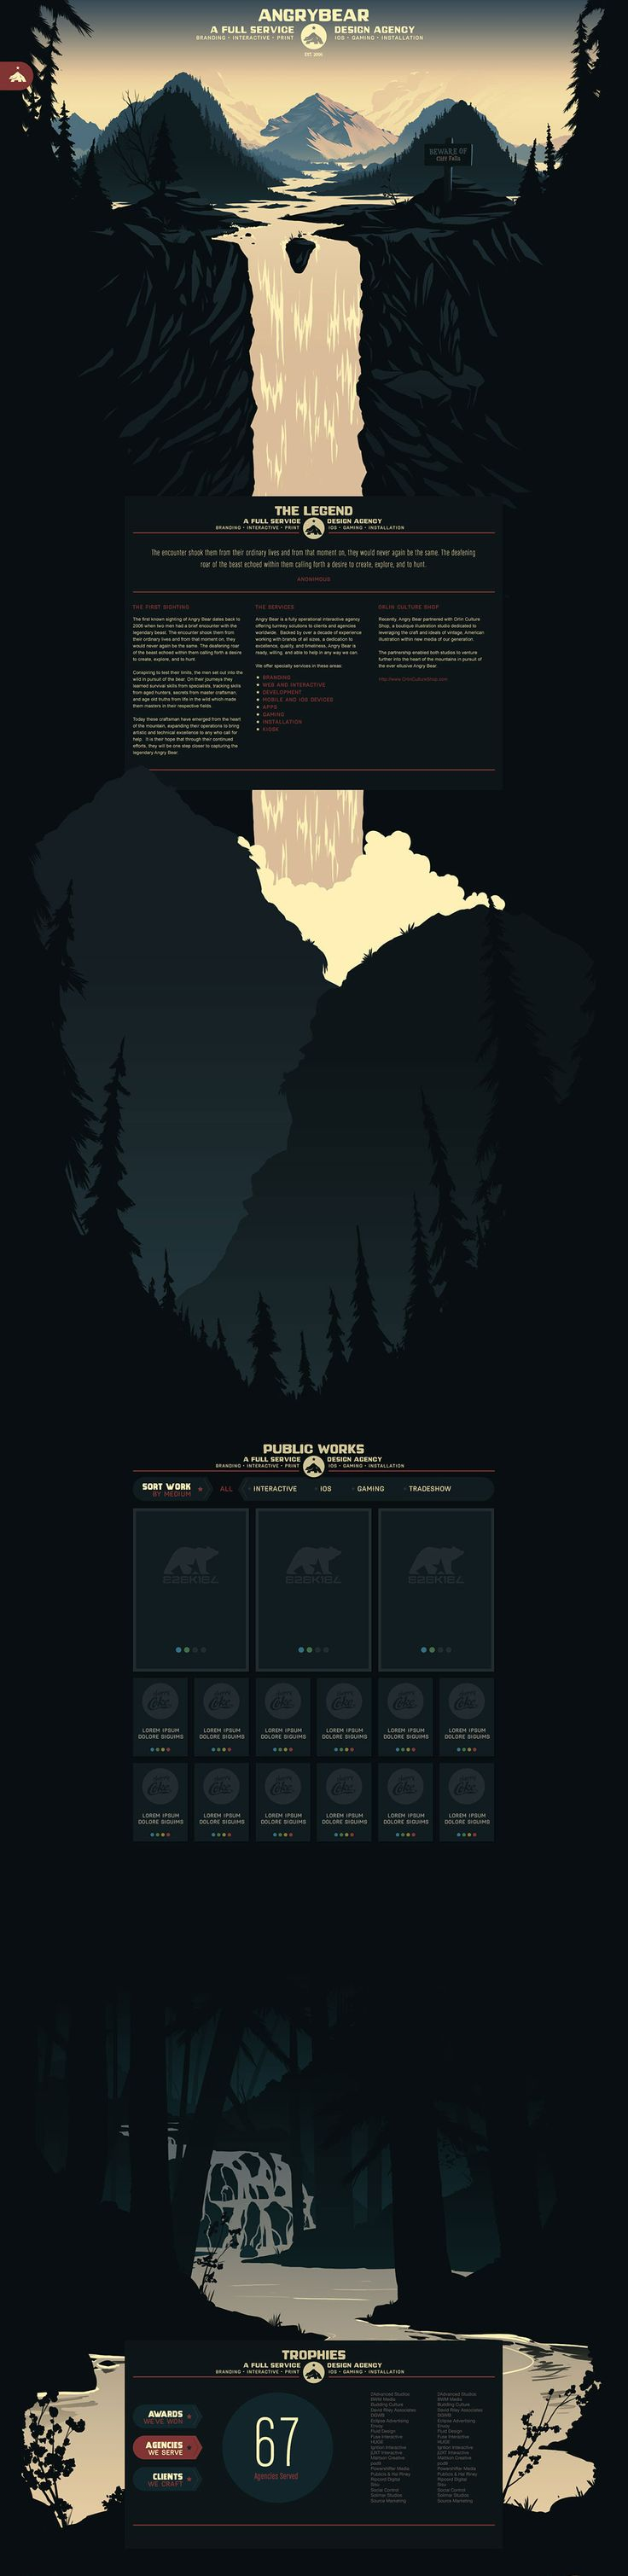 brian Miller illustrated and designed a MASSIVE outdoor scene that stretches down to the depths of the forest floor.